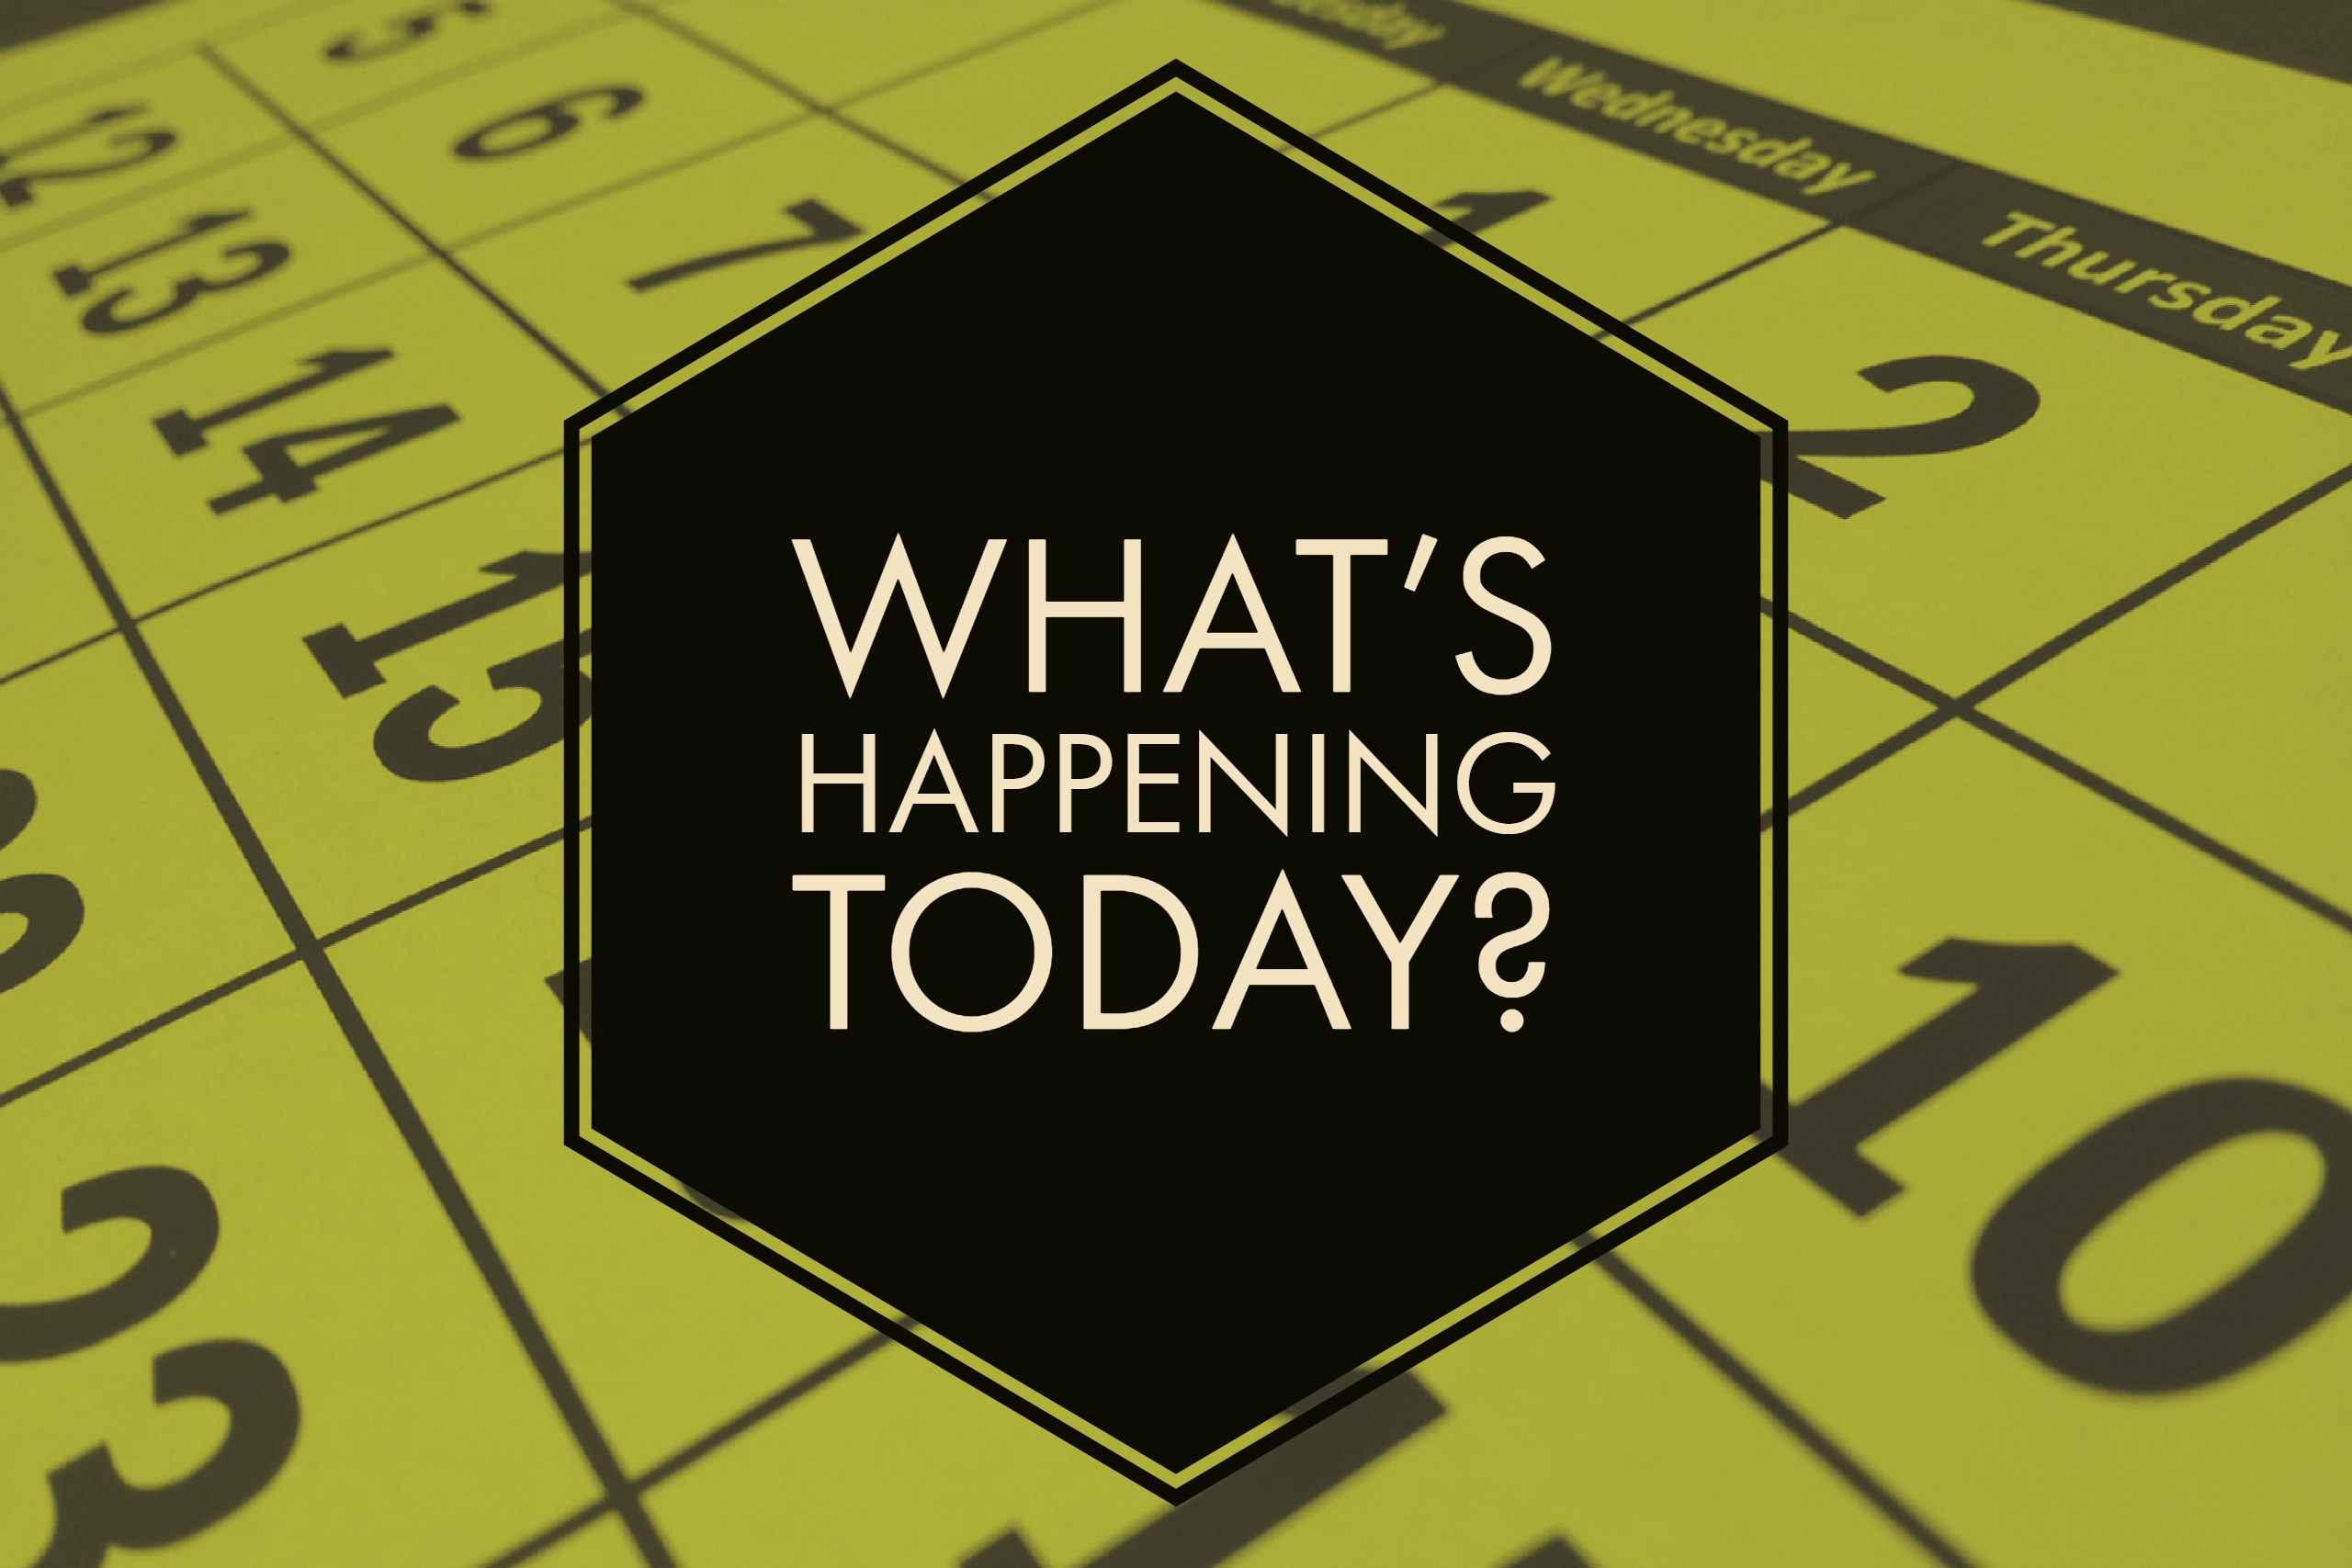 what's happening today text image